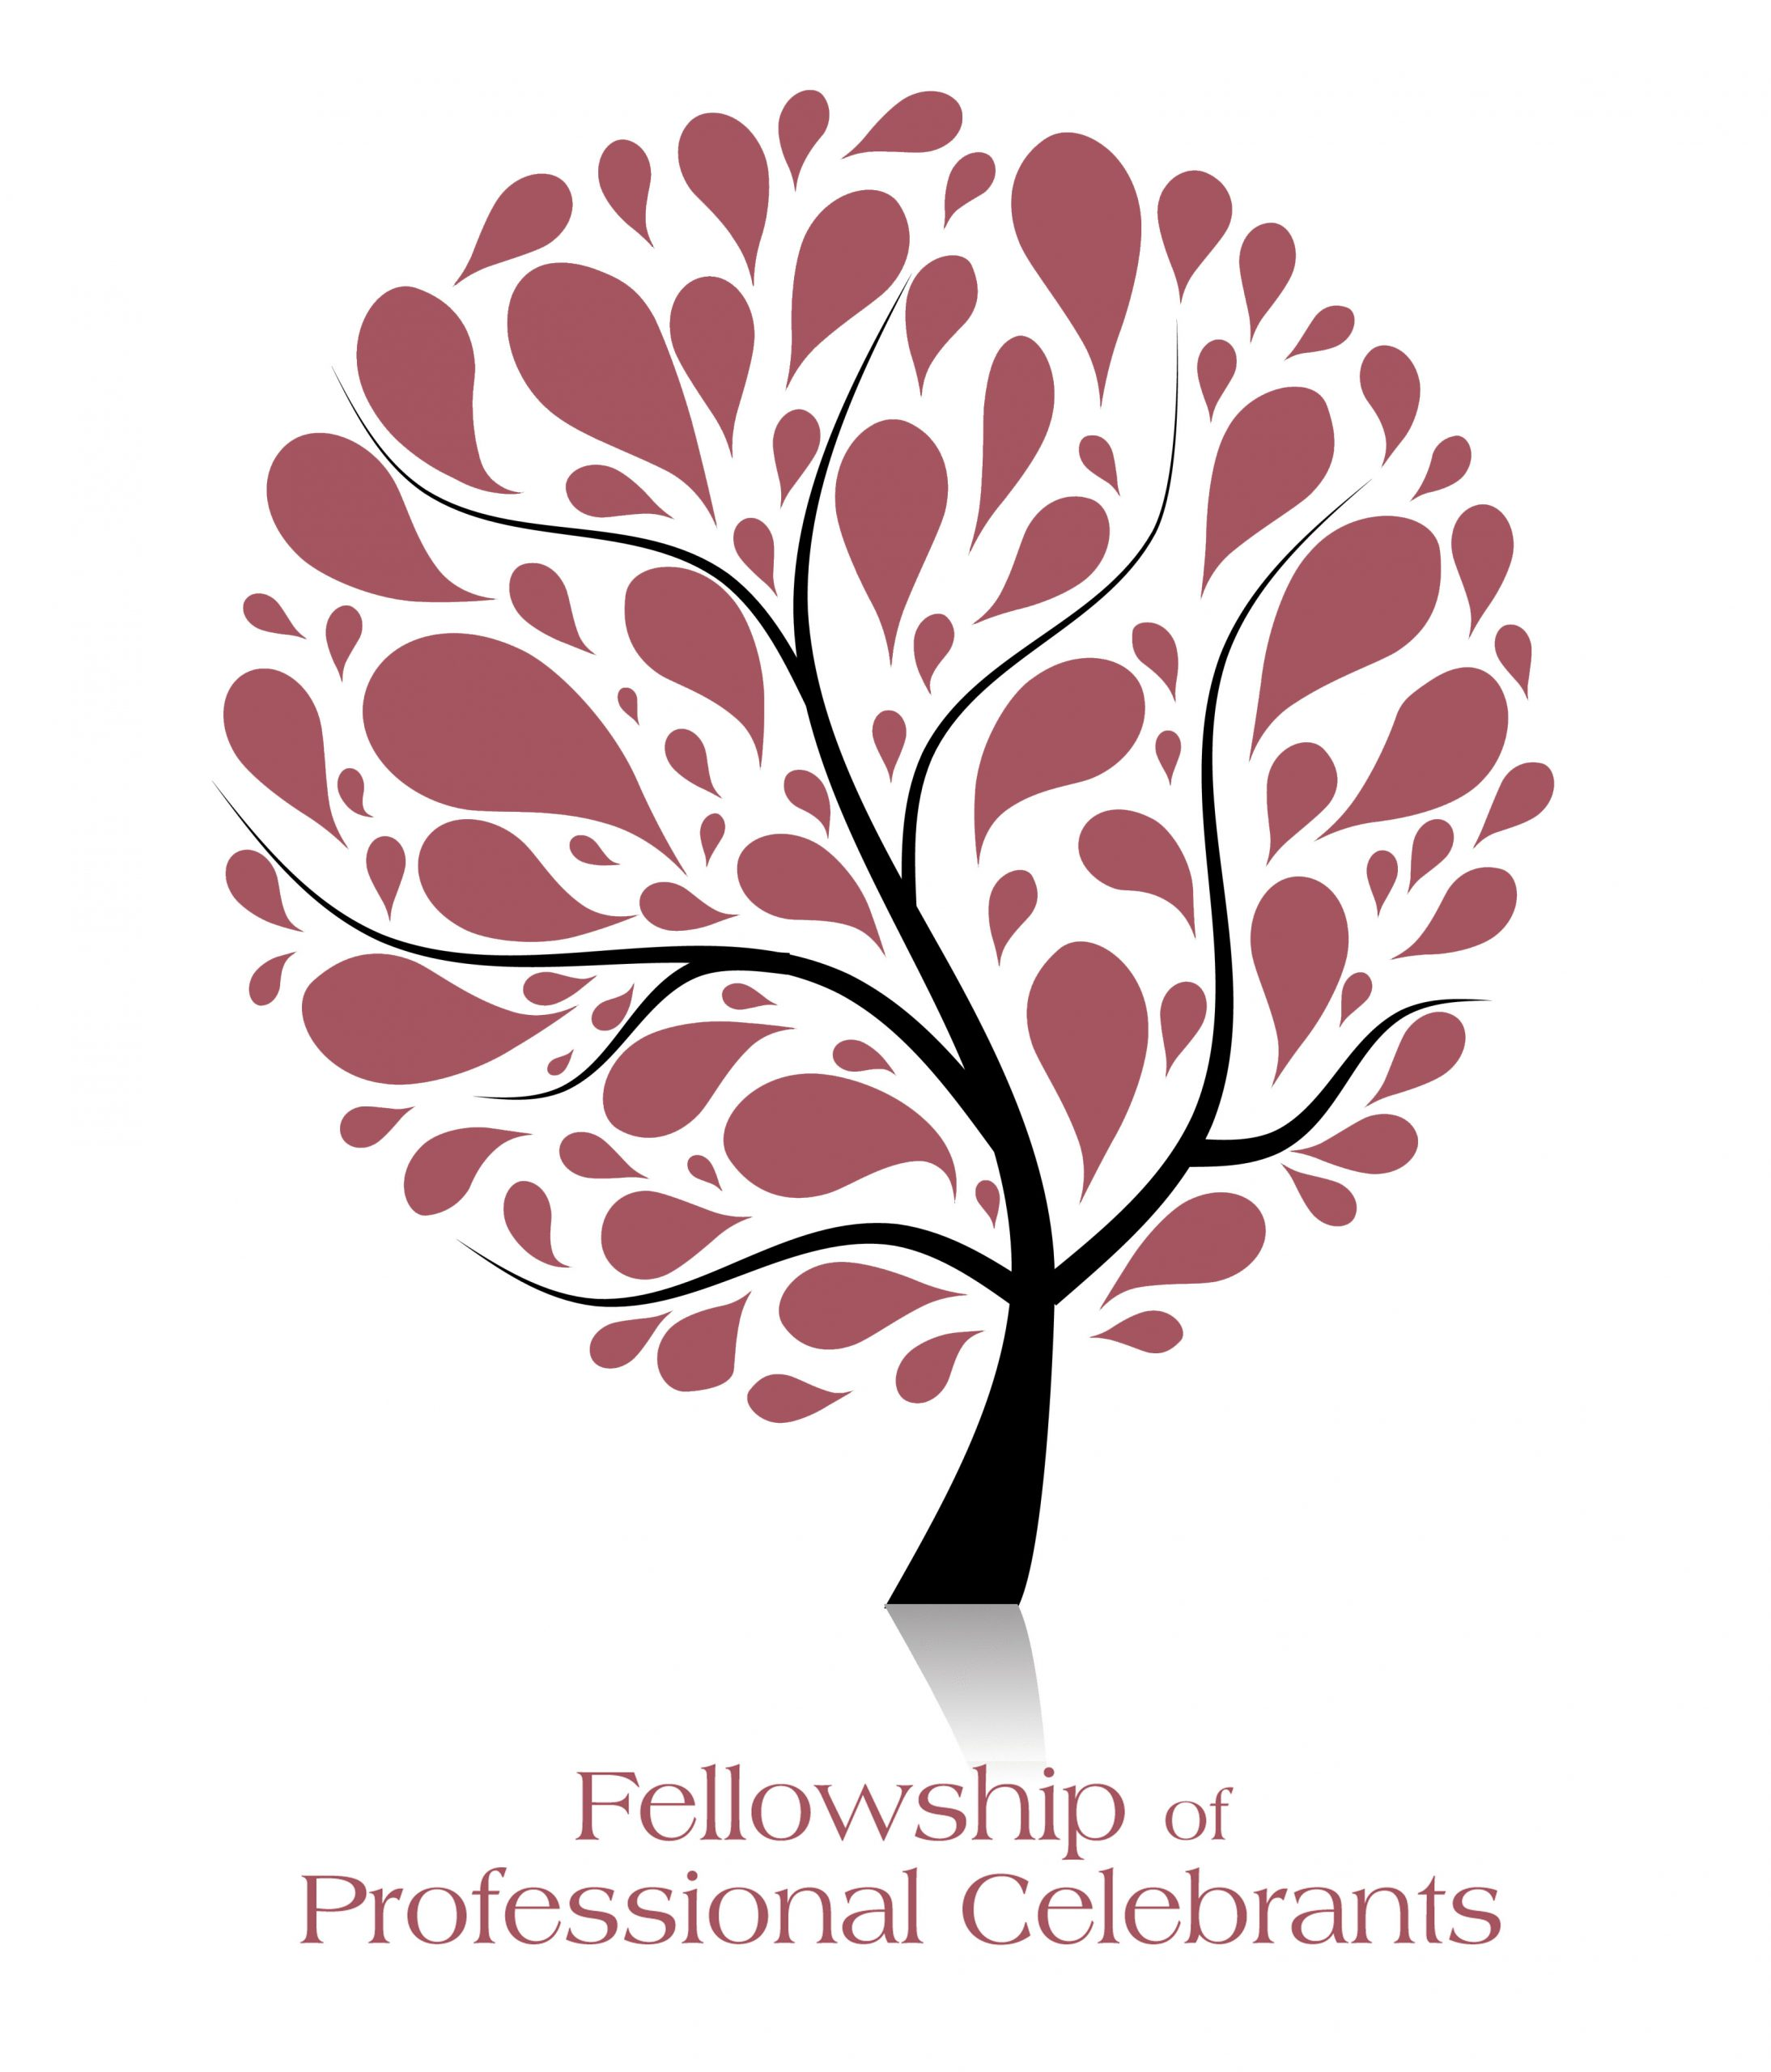 Red leaves on a tree fellowship of professional celebrants logo